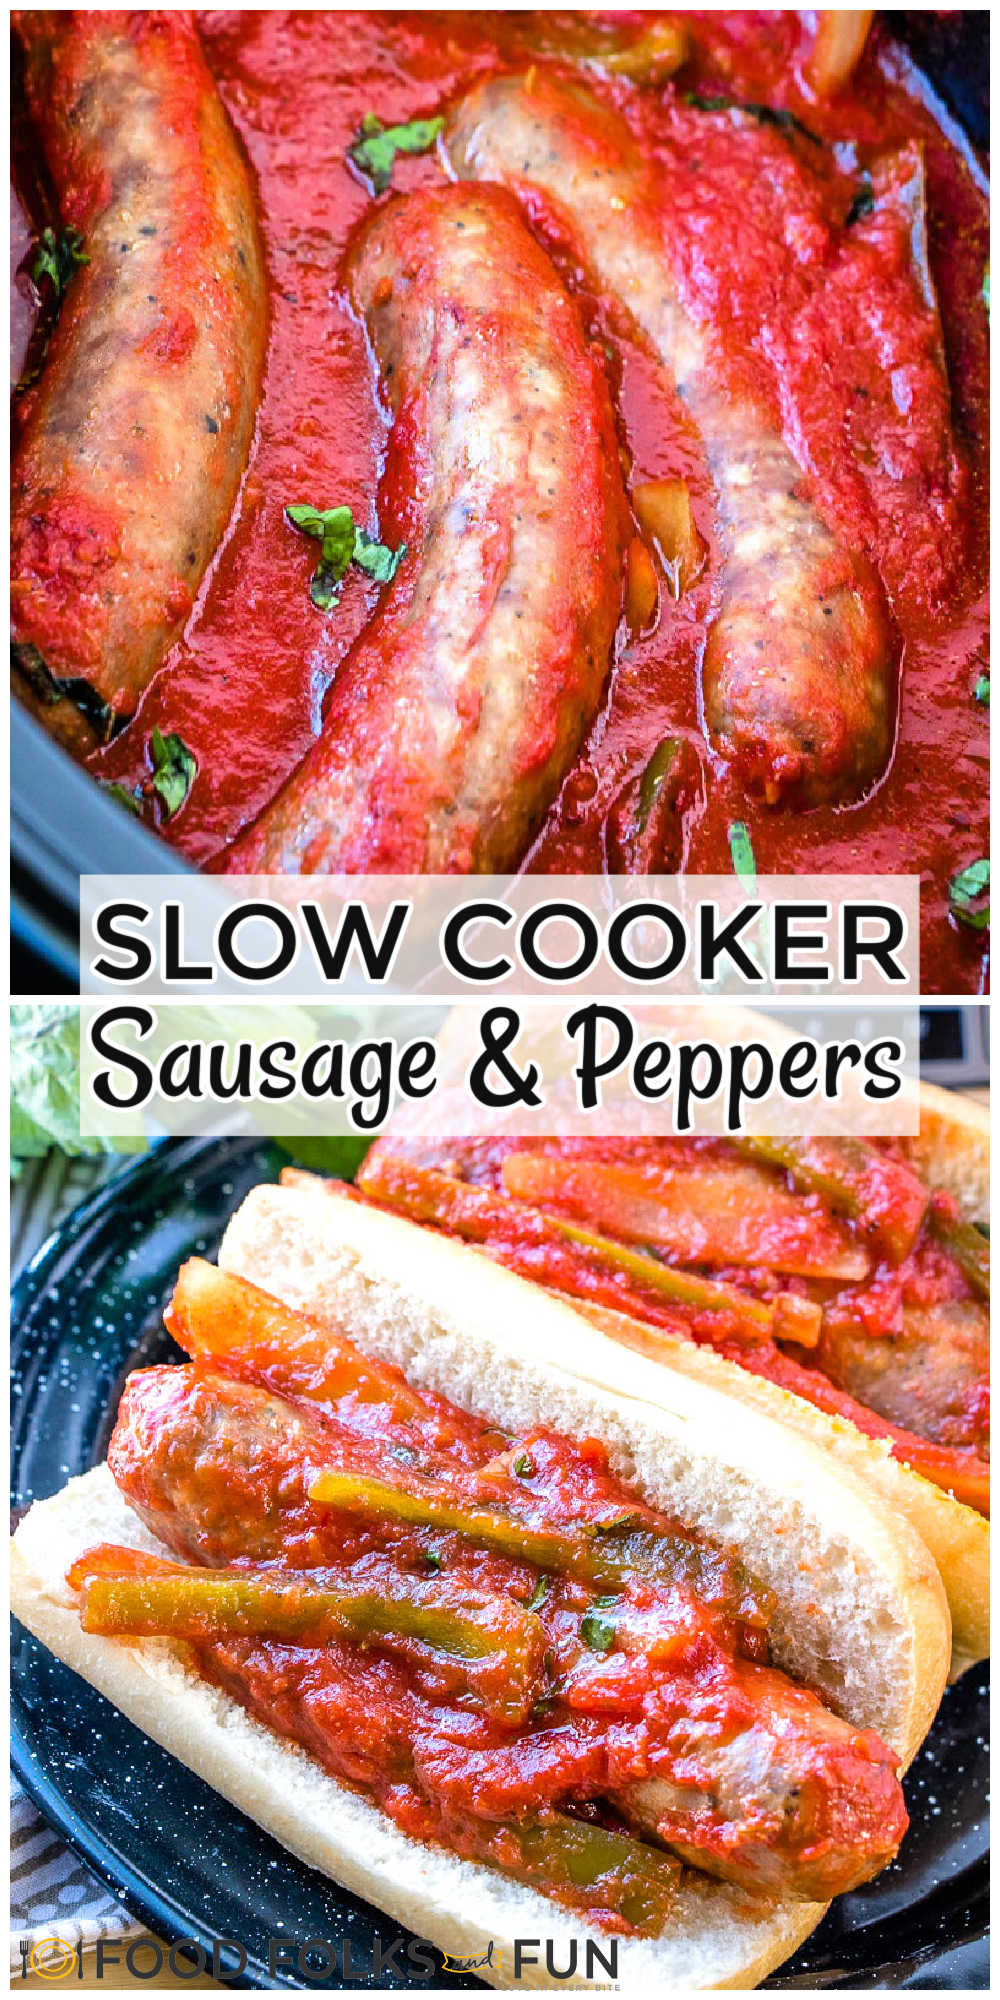 Slow Cooker Sausage and Peppers is a classic Italian-American comfort food dish. I've added my spin on it by cooking it in the crockpot! I includedmake ahead and freezer meal directions in this post! via @foodfolksandfun